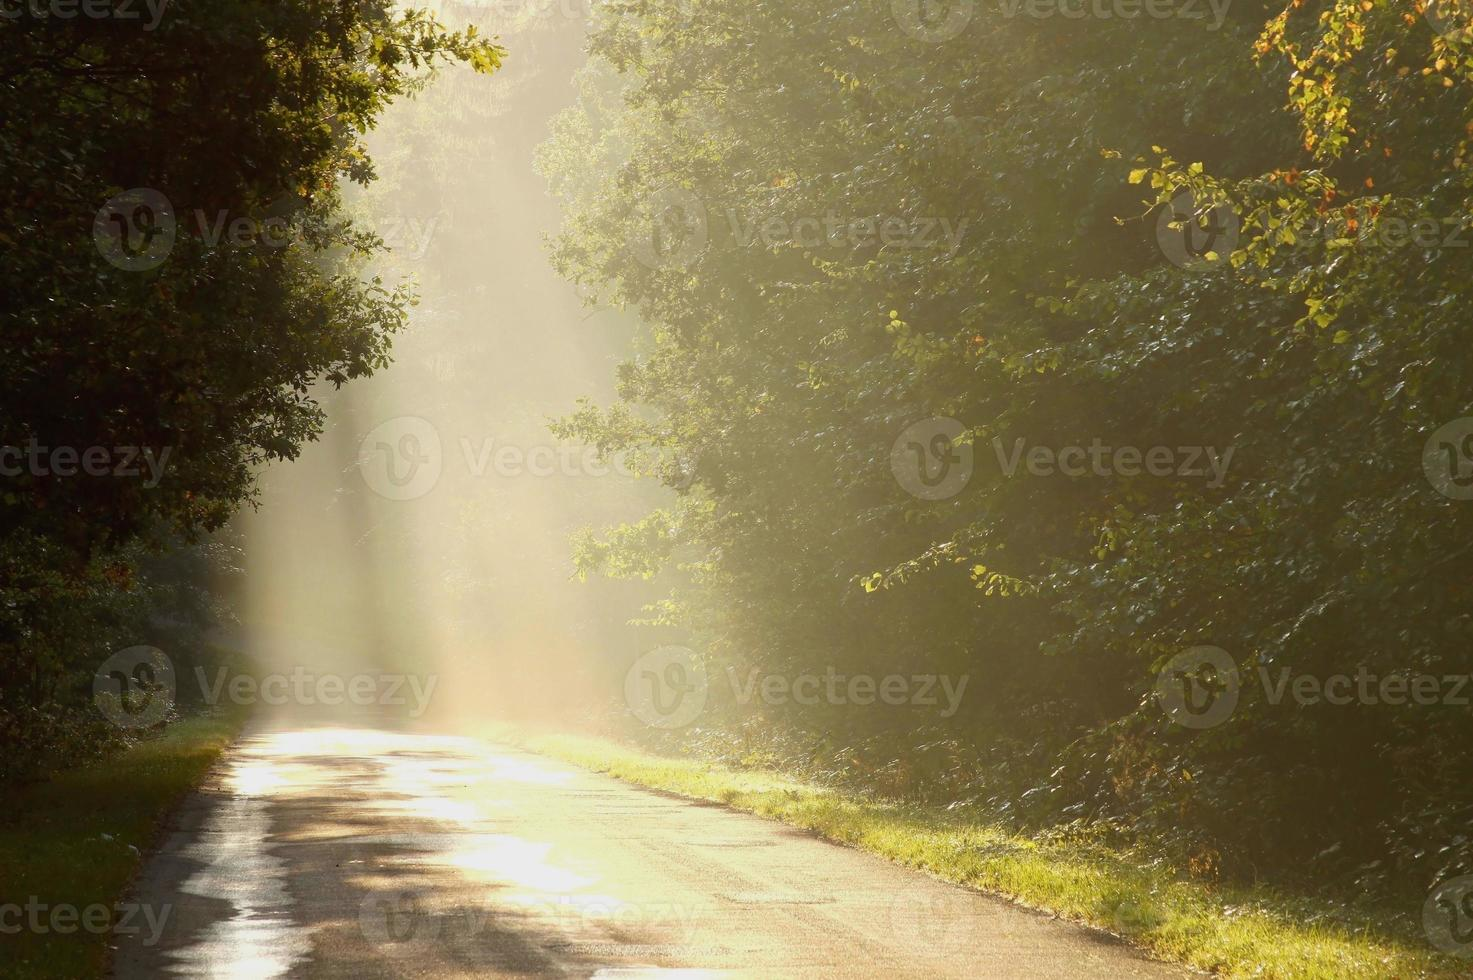 Misty country road at dawn photo